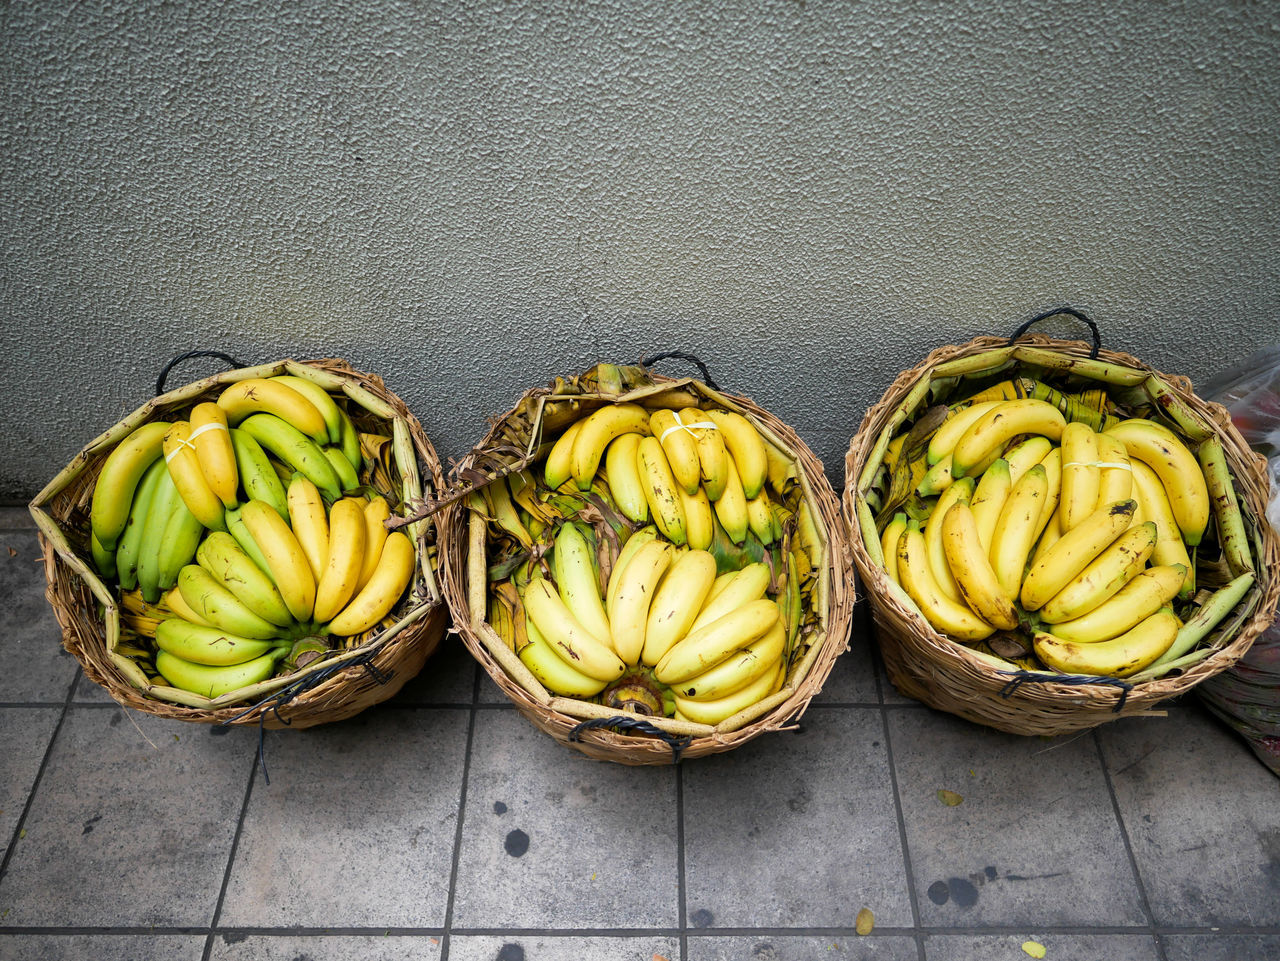 banana, food, food and drink, fruit, no people, healthy eating, freshness, bunch, vegetable, basket, green color, yellow, day, outdoors, close-up